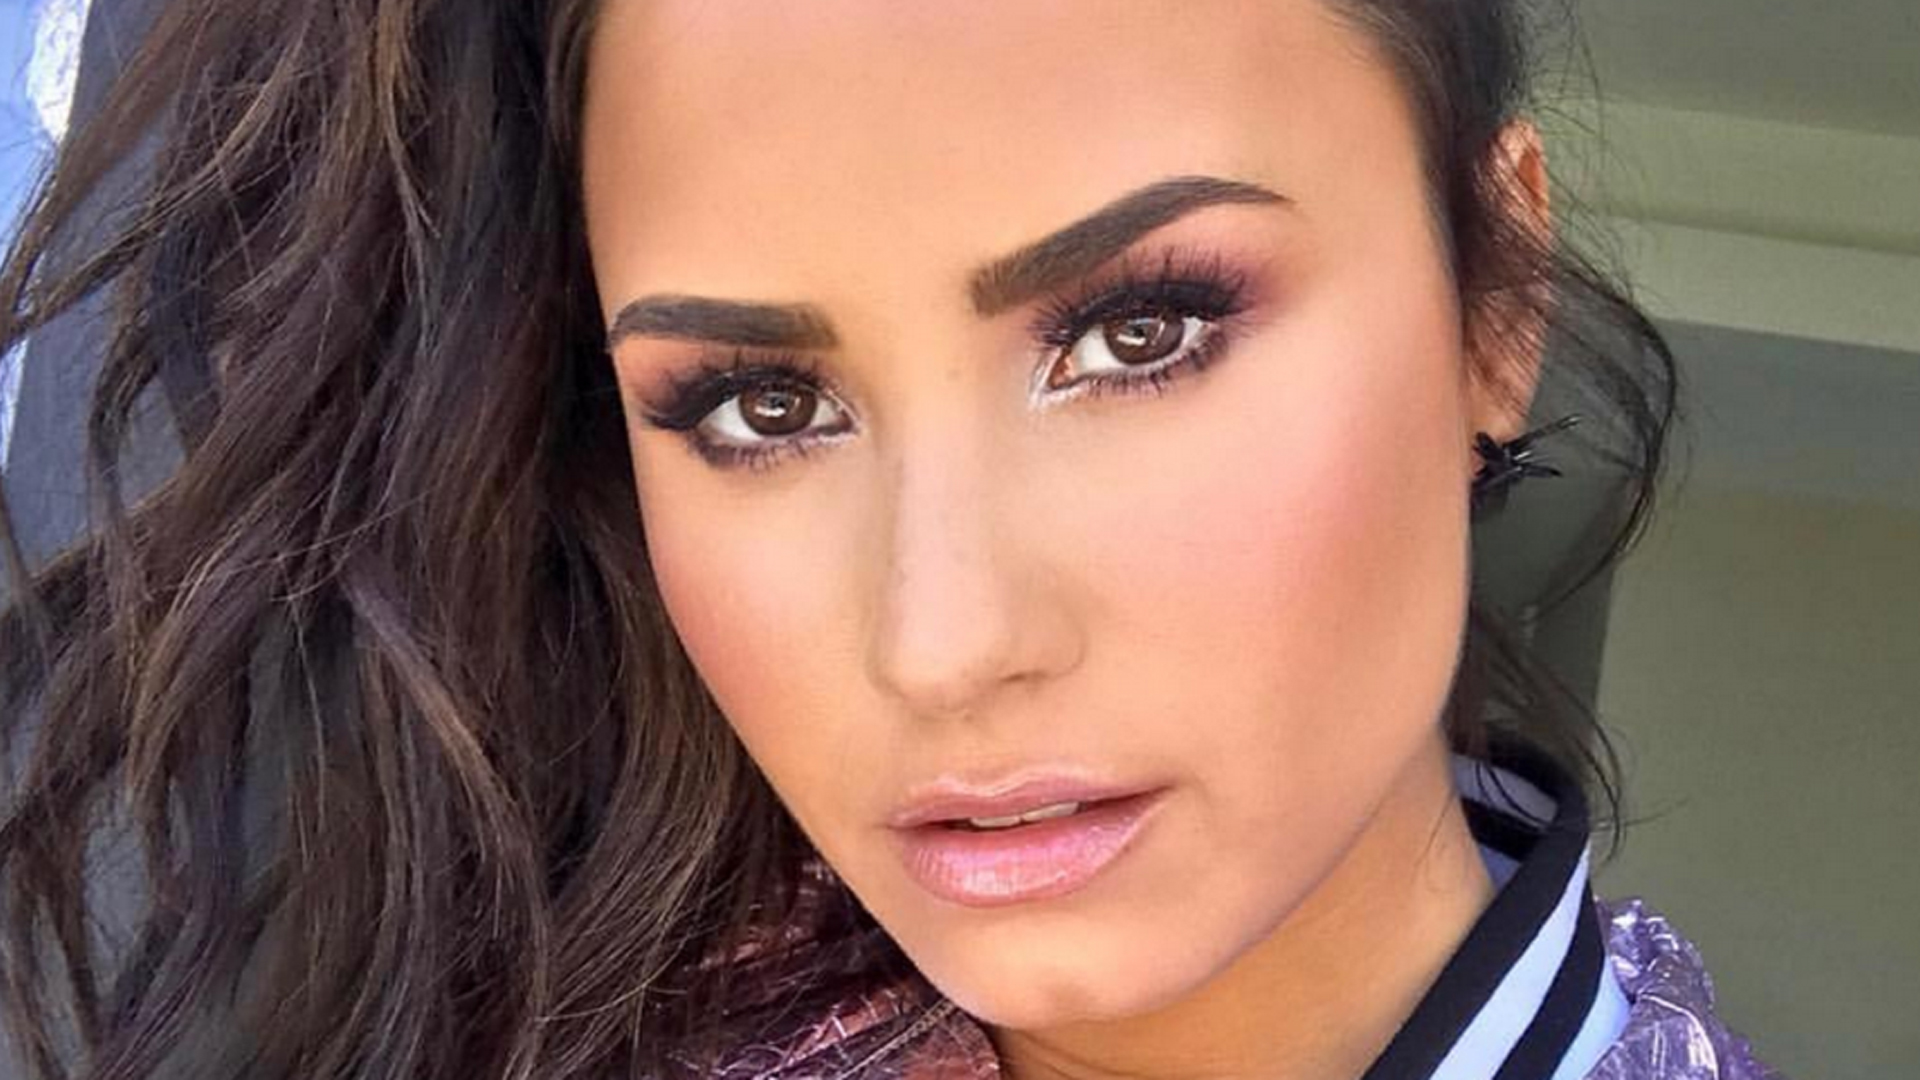 The Shady Side Of Demi Lovato